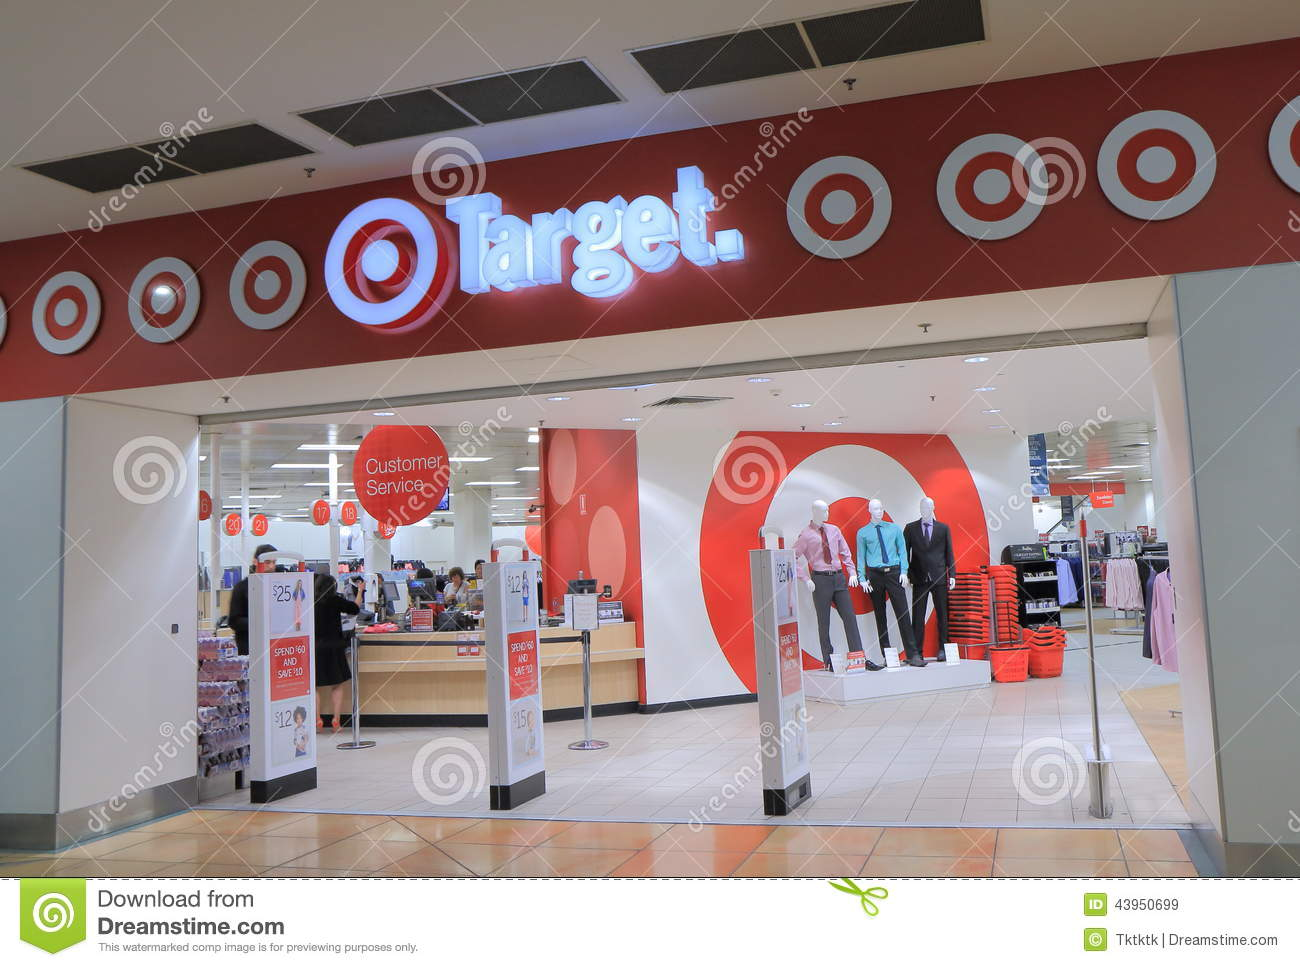 People shop at Target department store